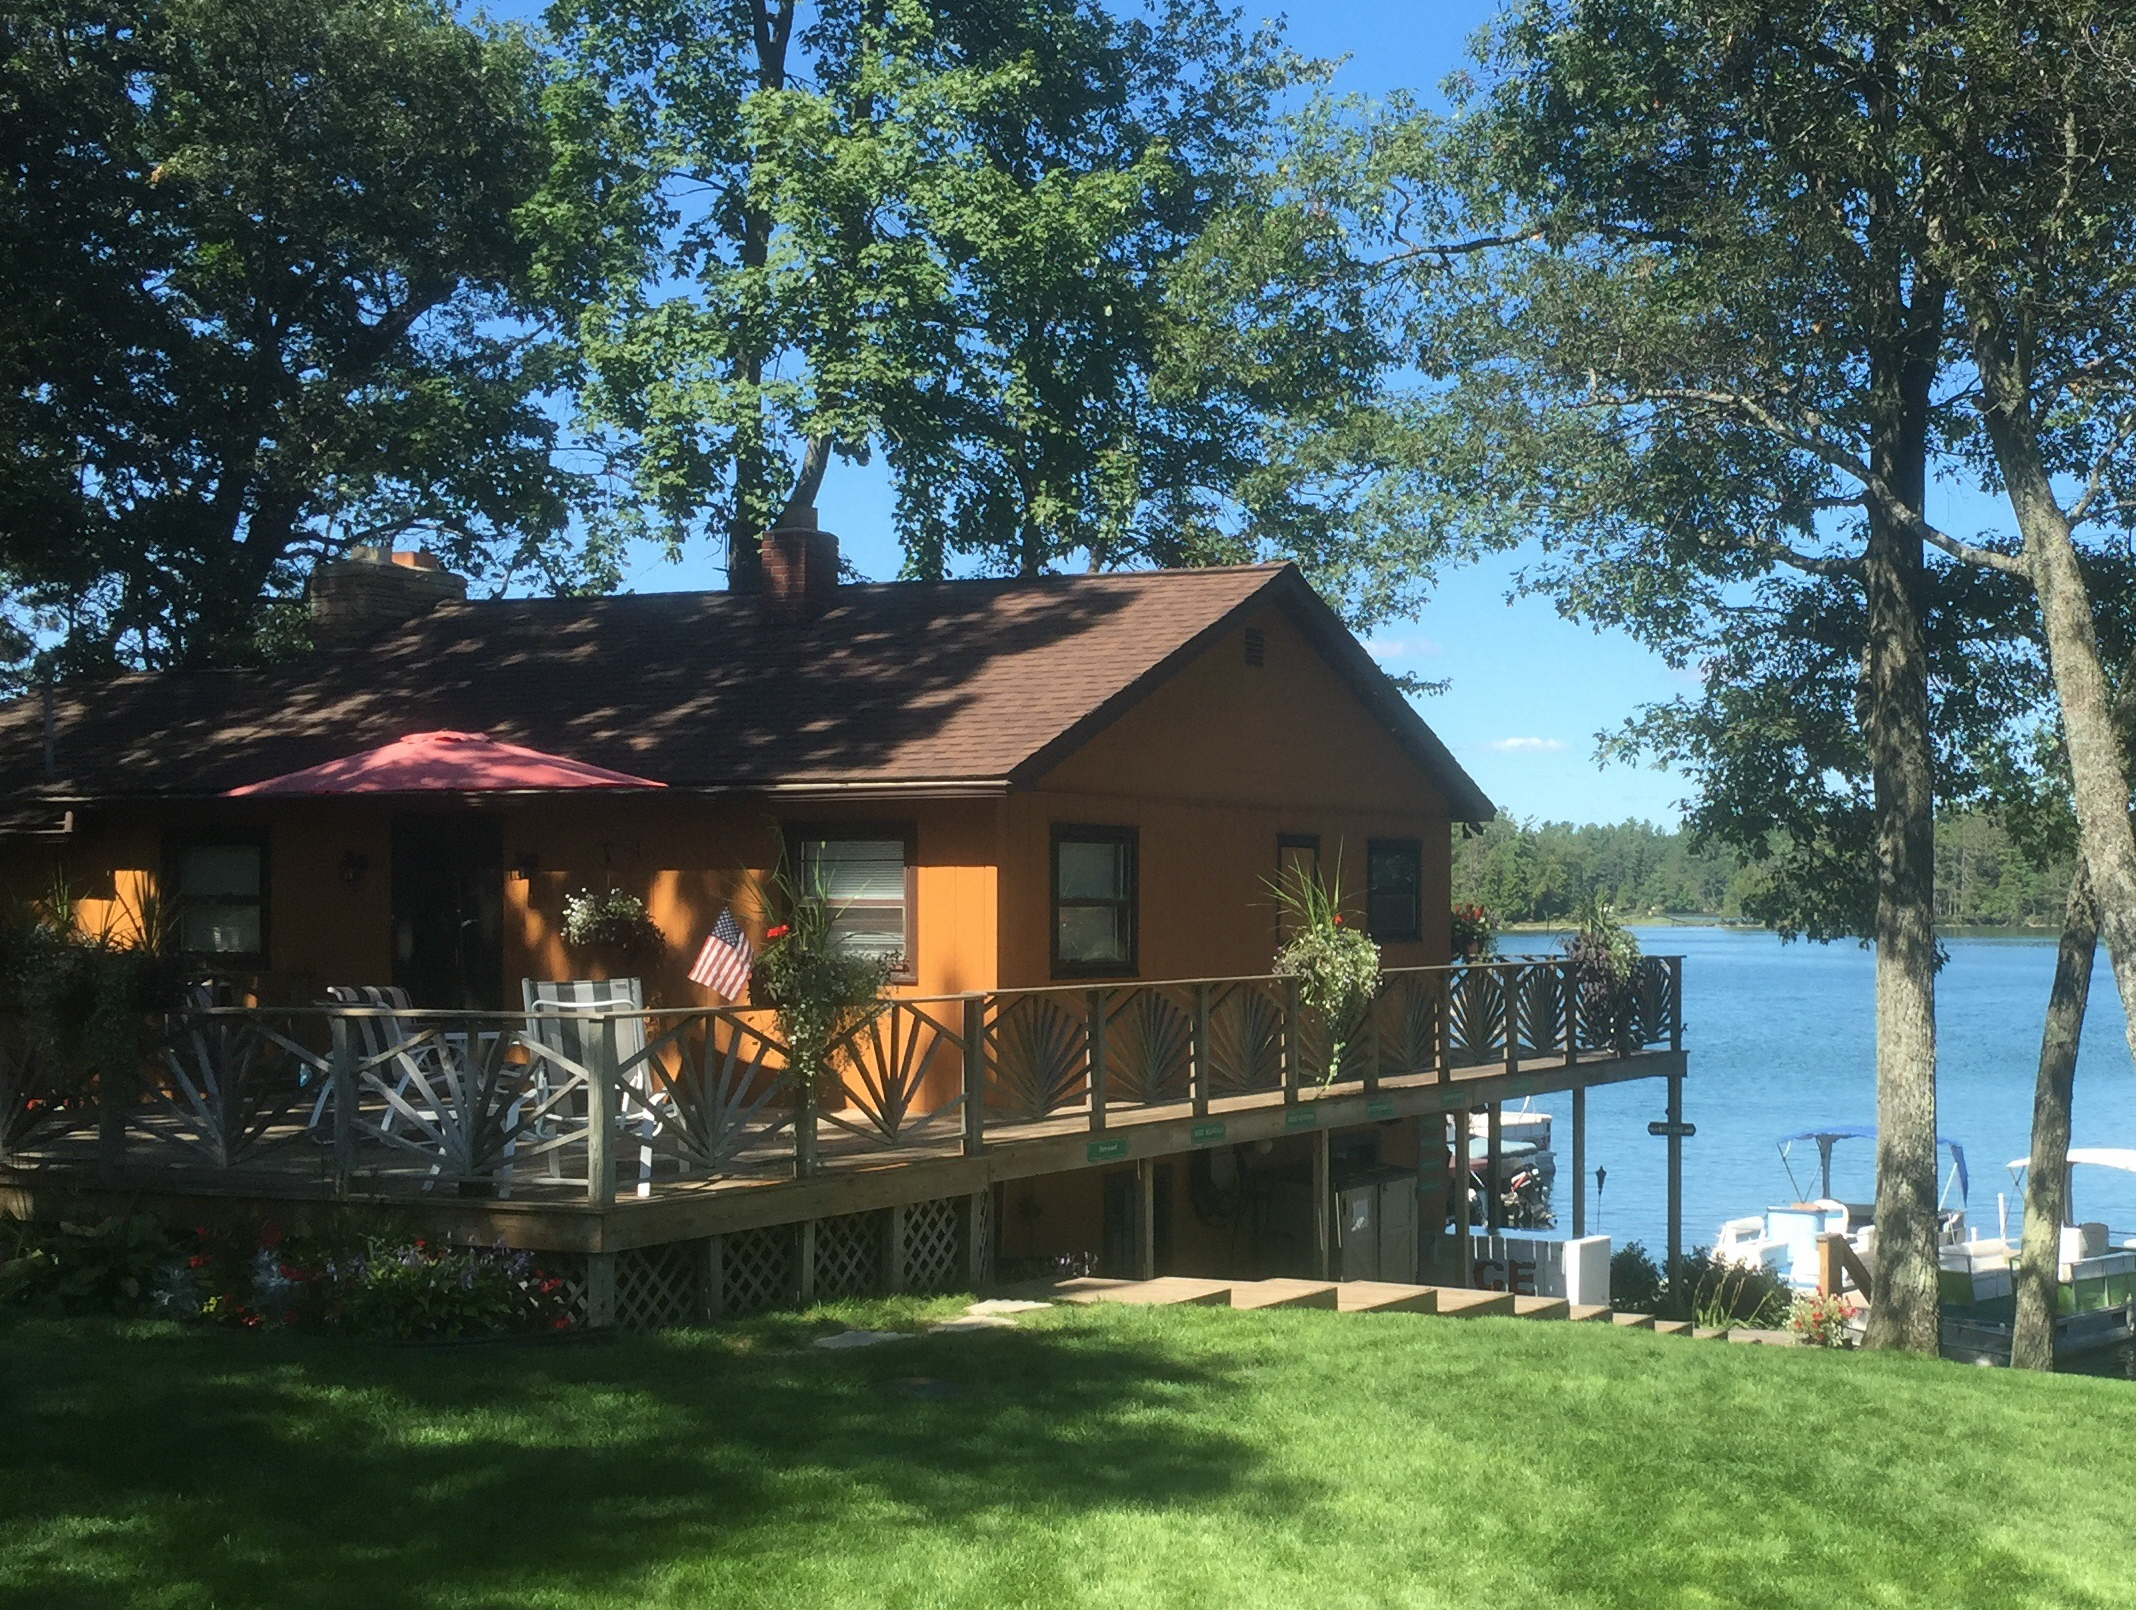 Clear lake Resort, Michigan Lodging, Family Vacation Resort